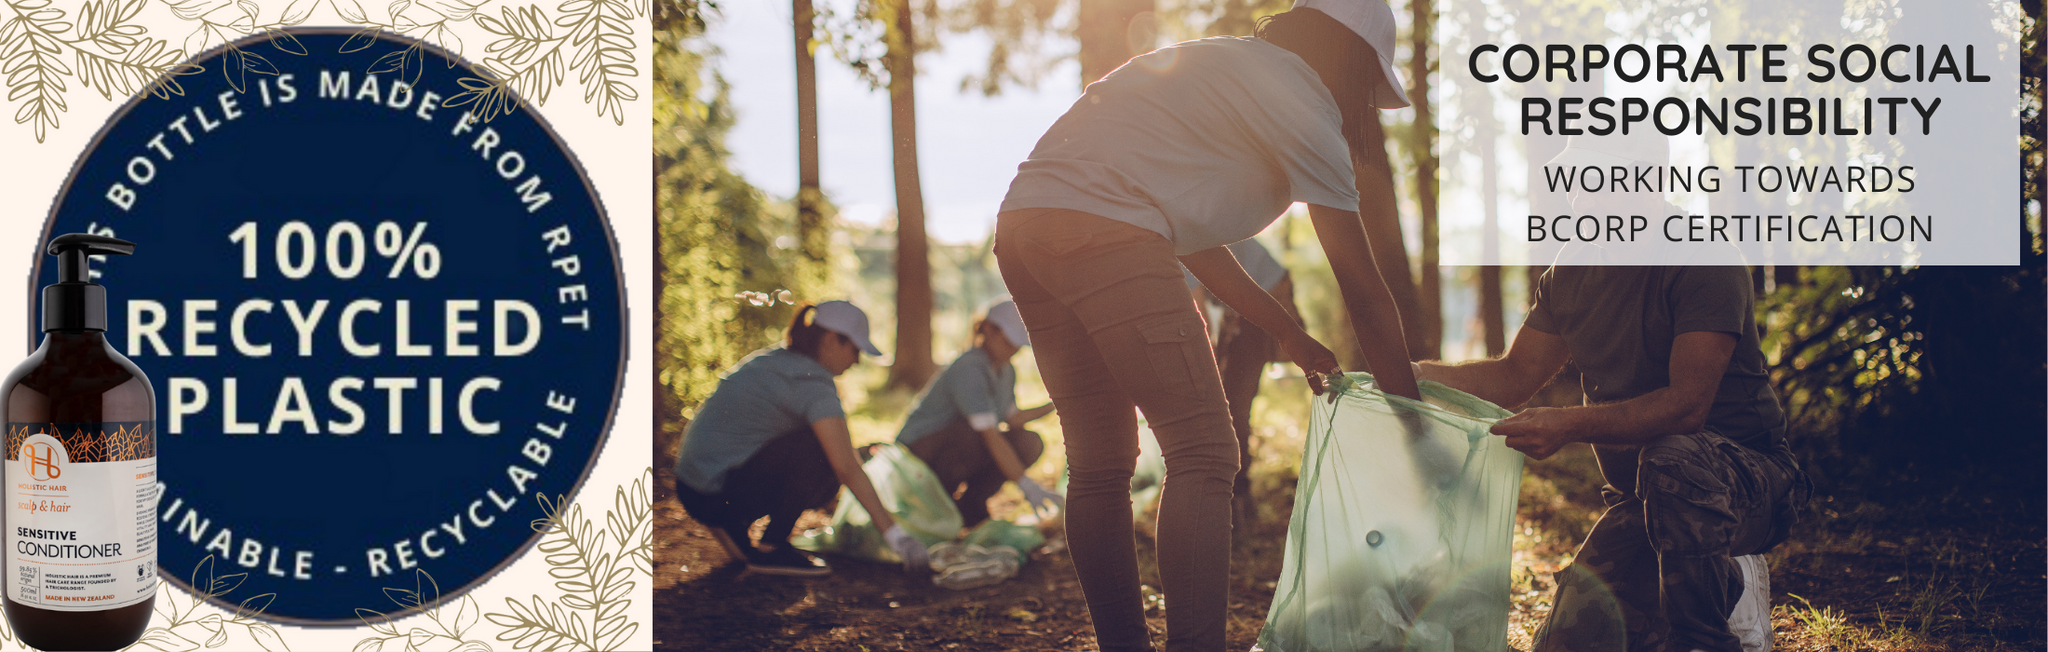 Corporate Social Responsibility- Our sustainability initiatives